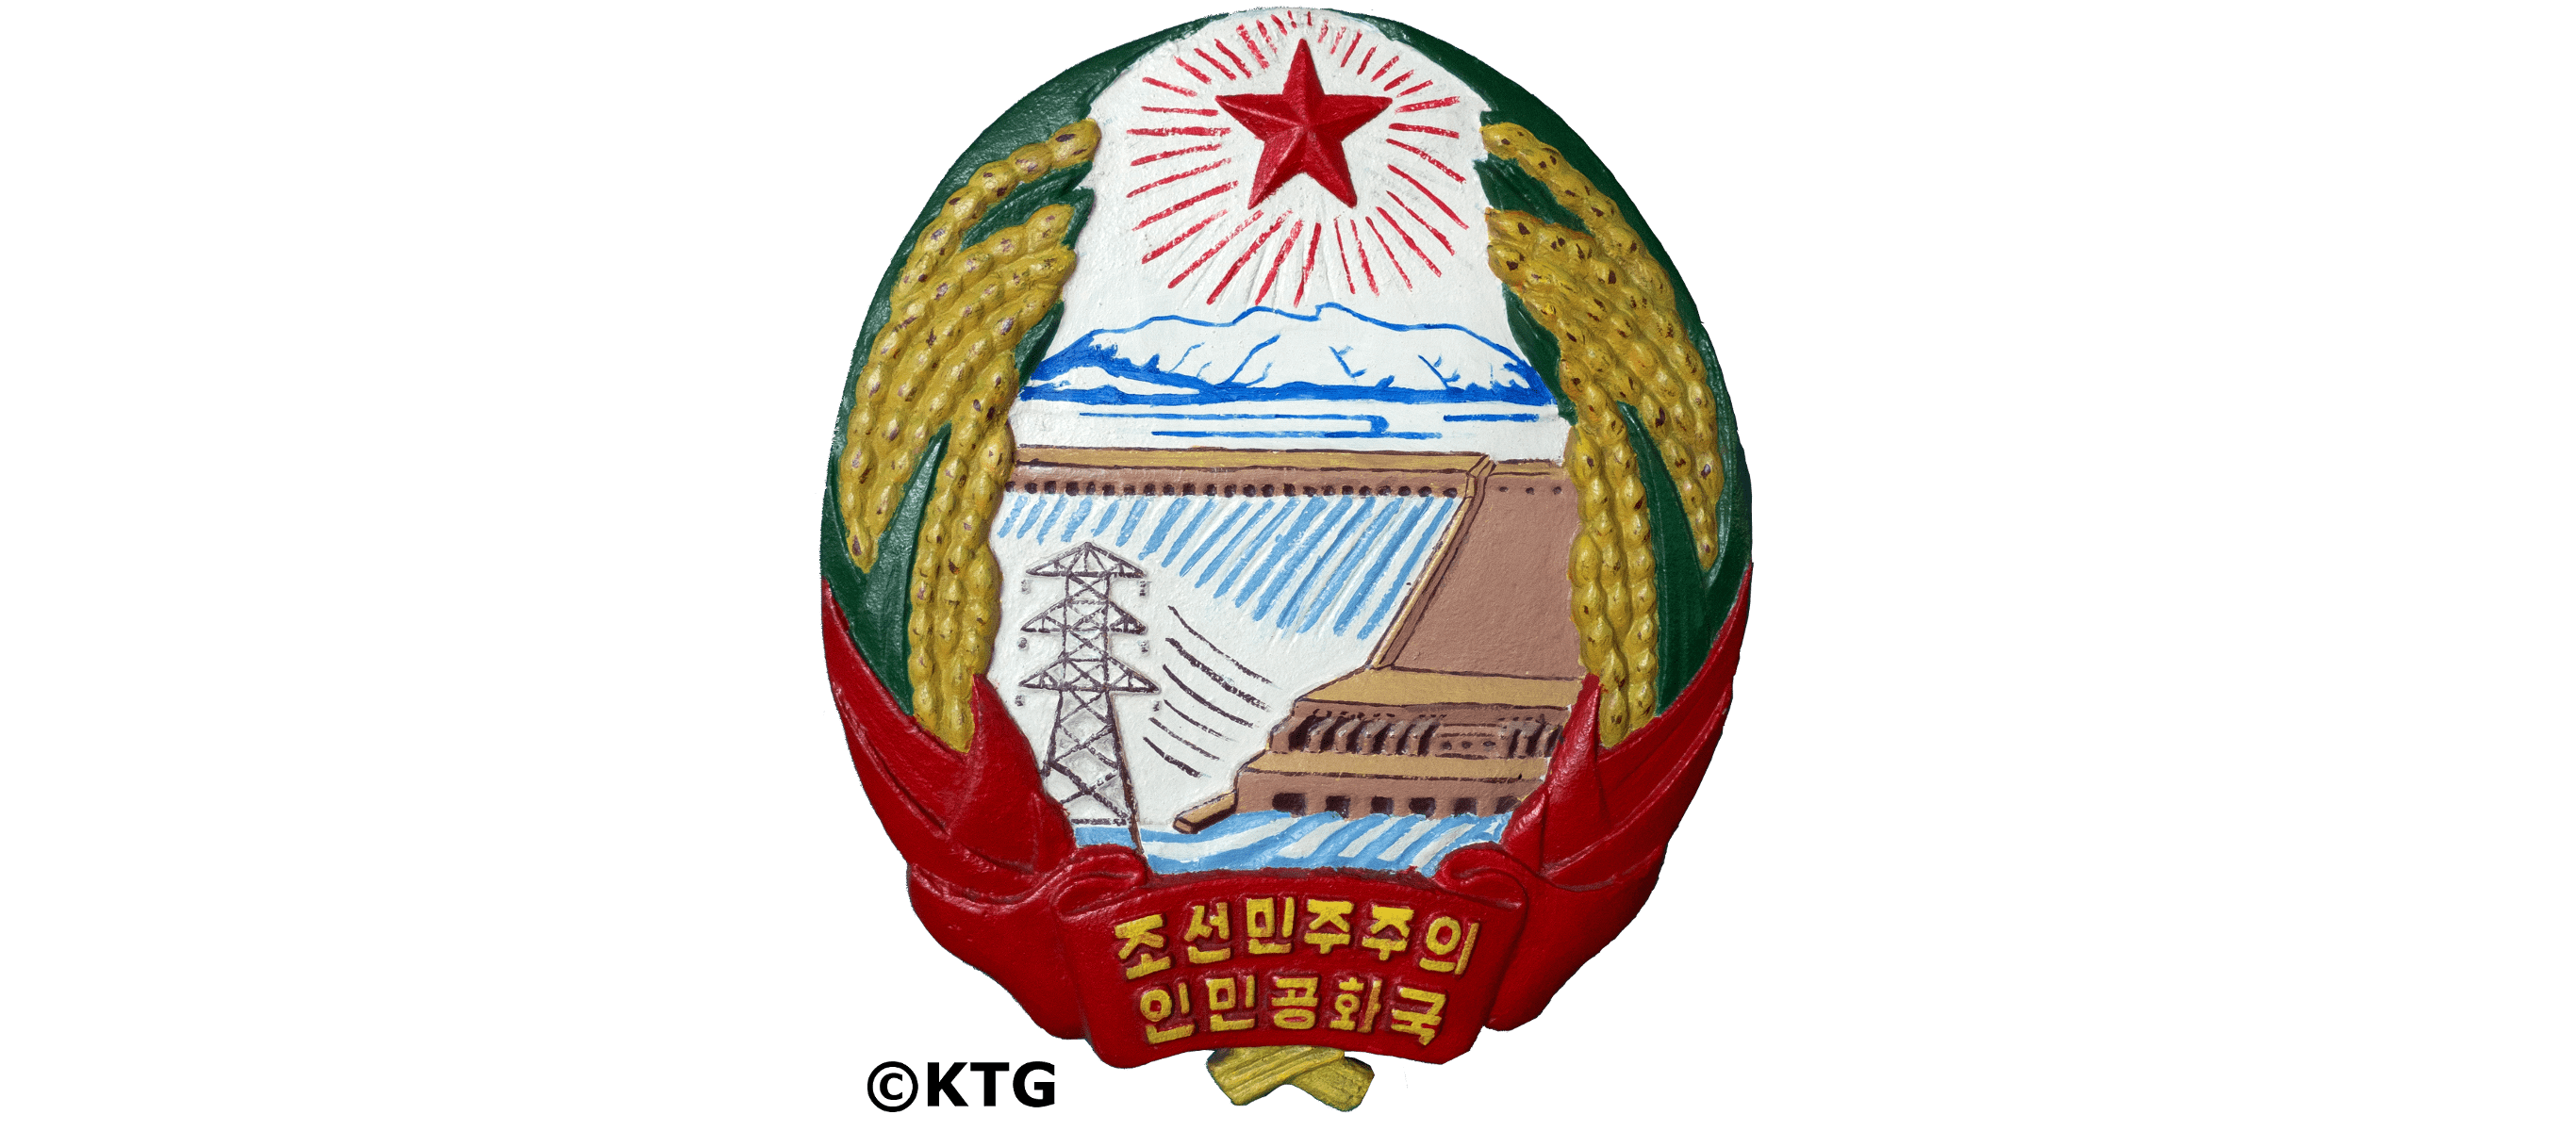 DPRK Natonional Emblem. The National Emblem of North Korea consists of a red star, Mount Paekdu, a dam, electric towers and cornfields. Picture taken by KTG